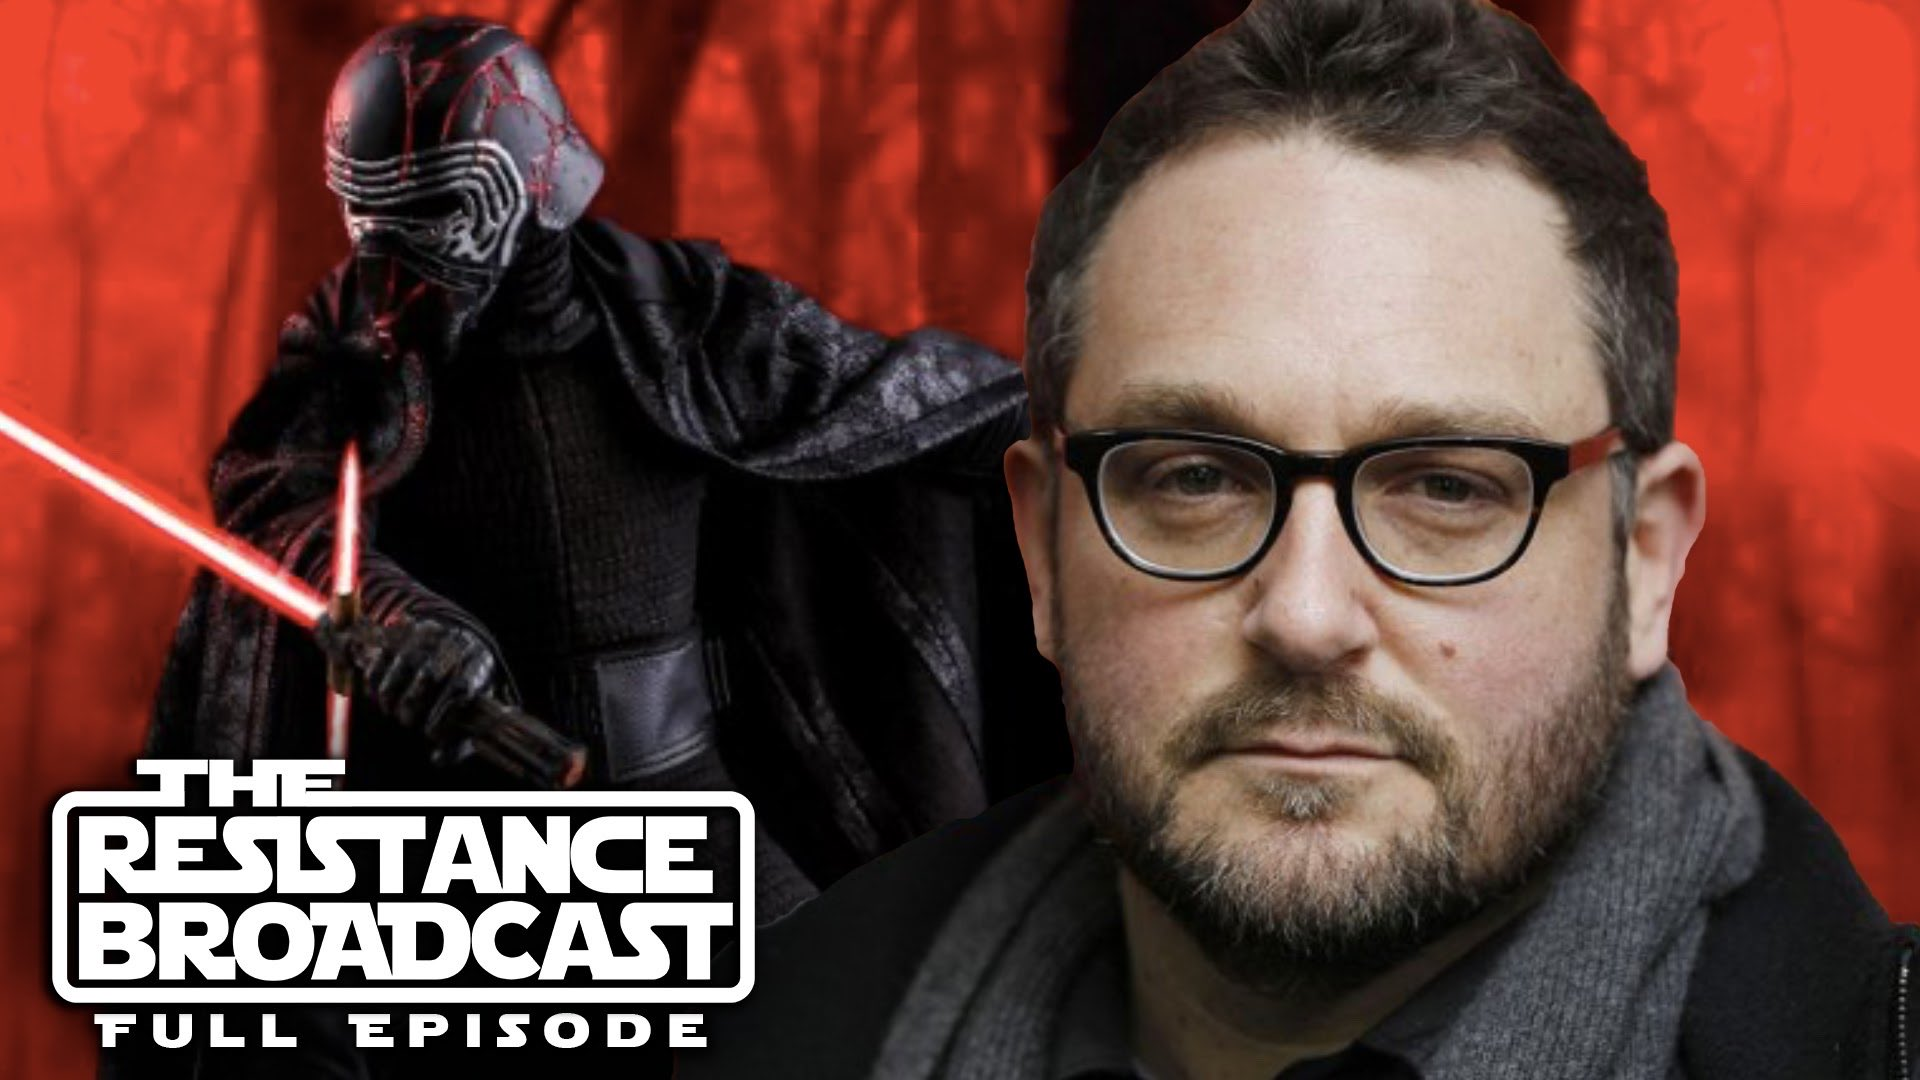 The Resistance Broadcast Colin Trevorrow S Story For Star Wars Episode Ix Star Wars News Net